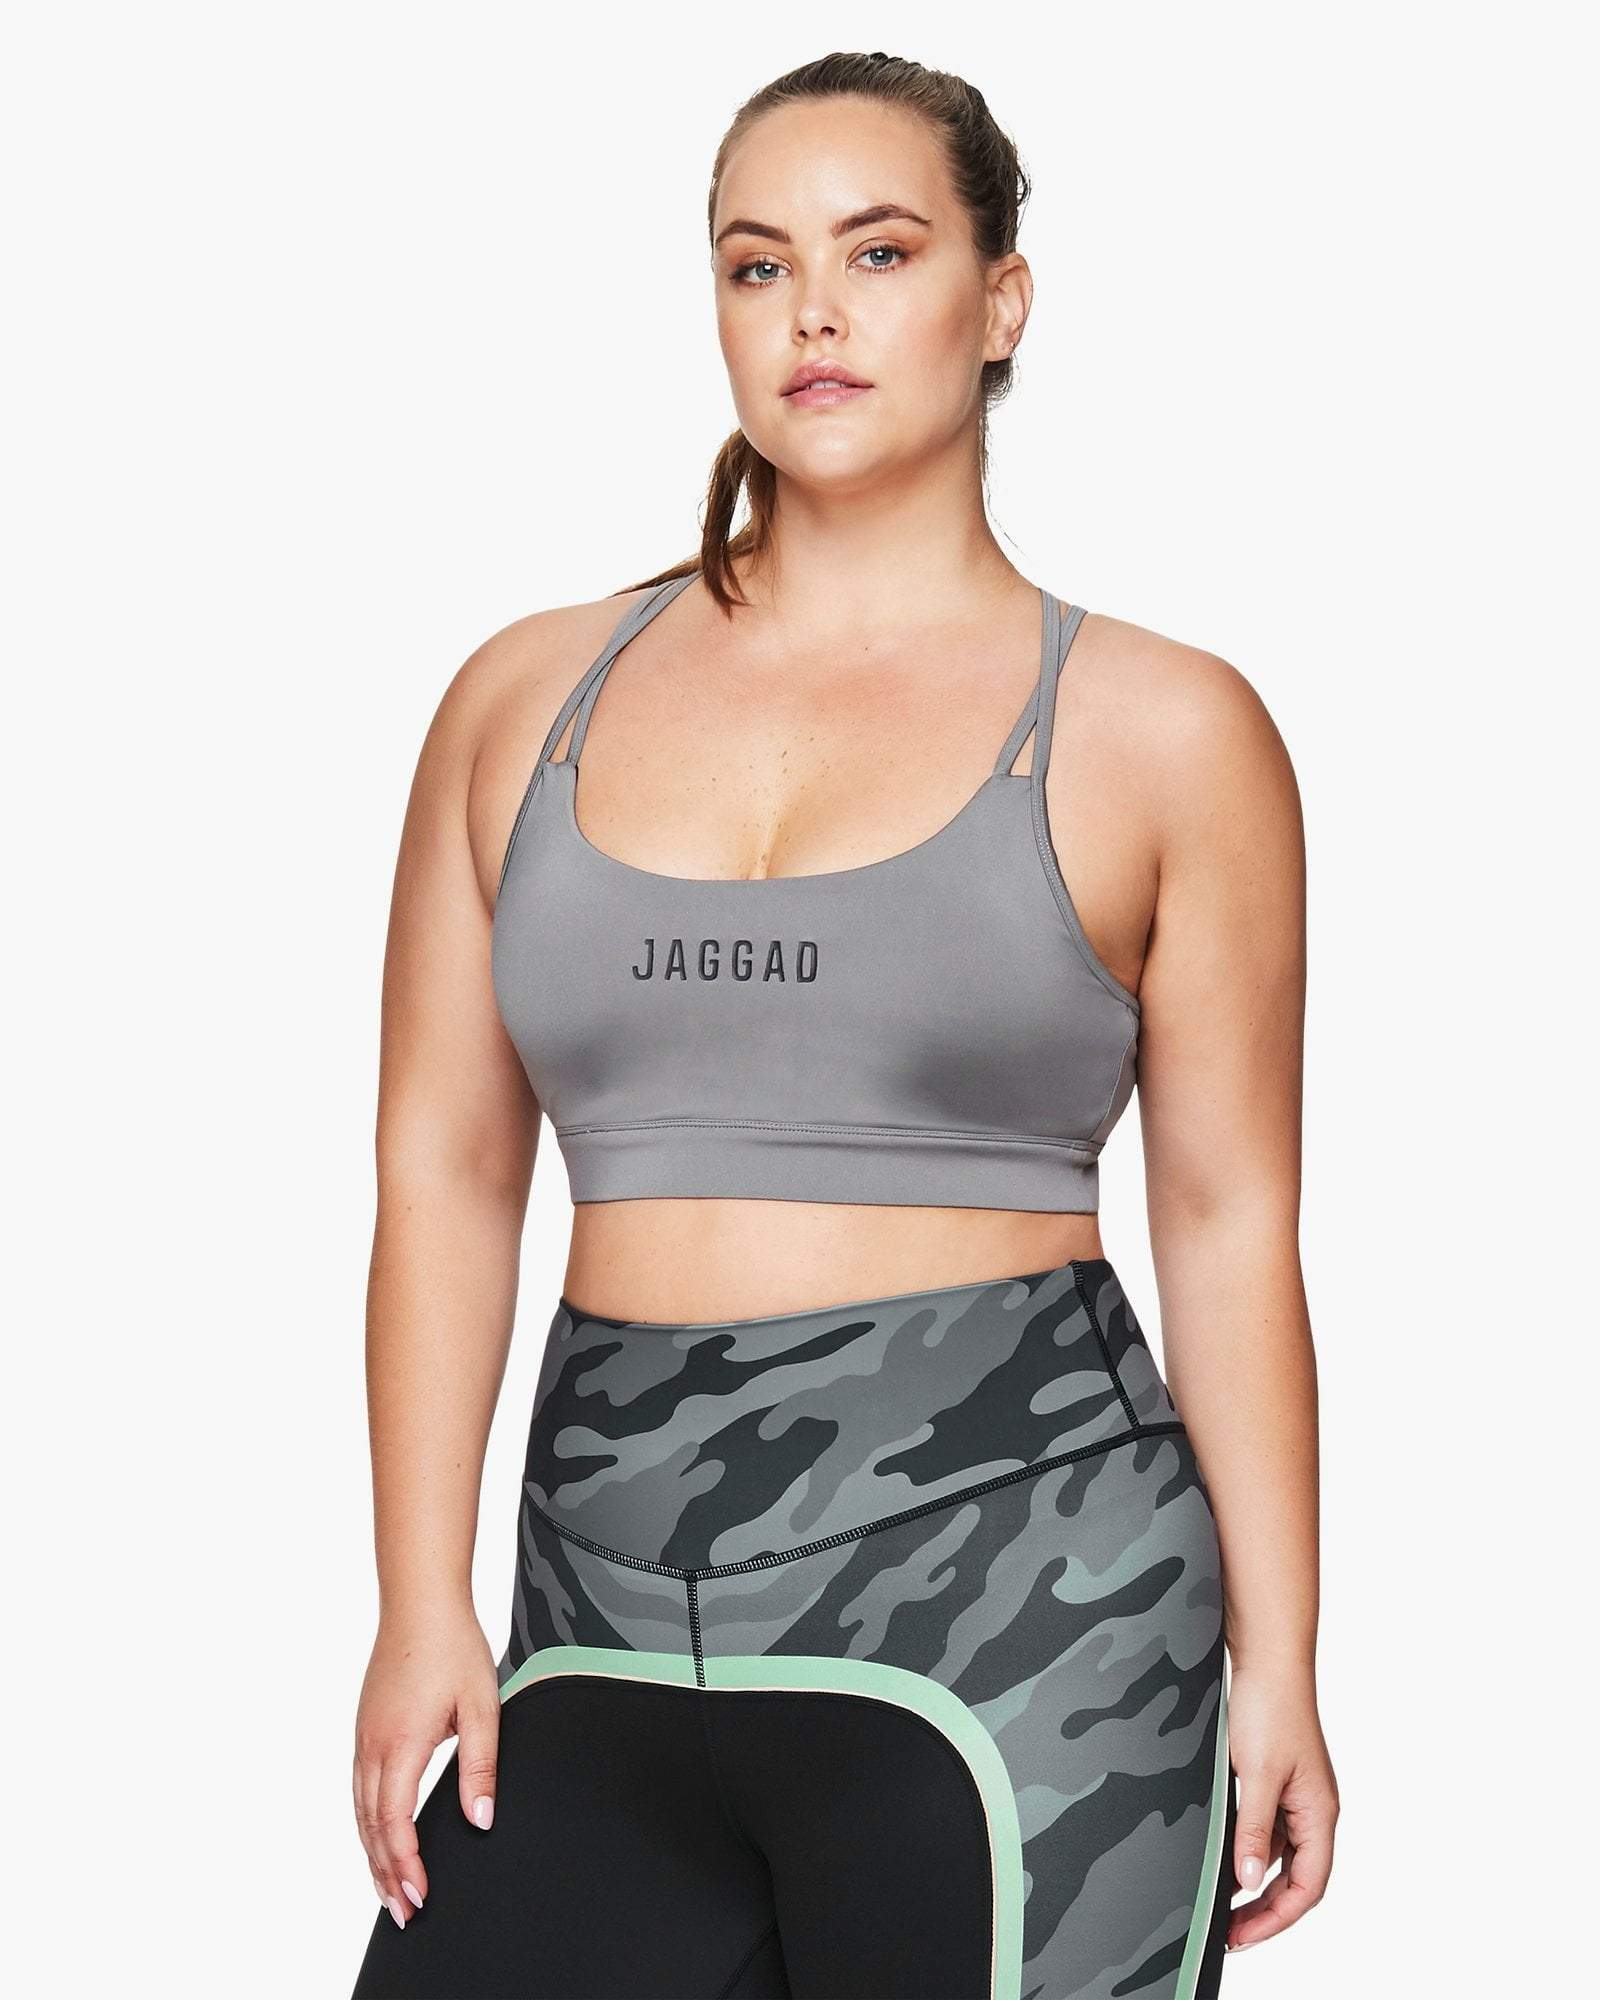 Jaggad Steel Strappy Crop Bra